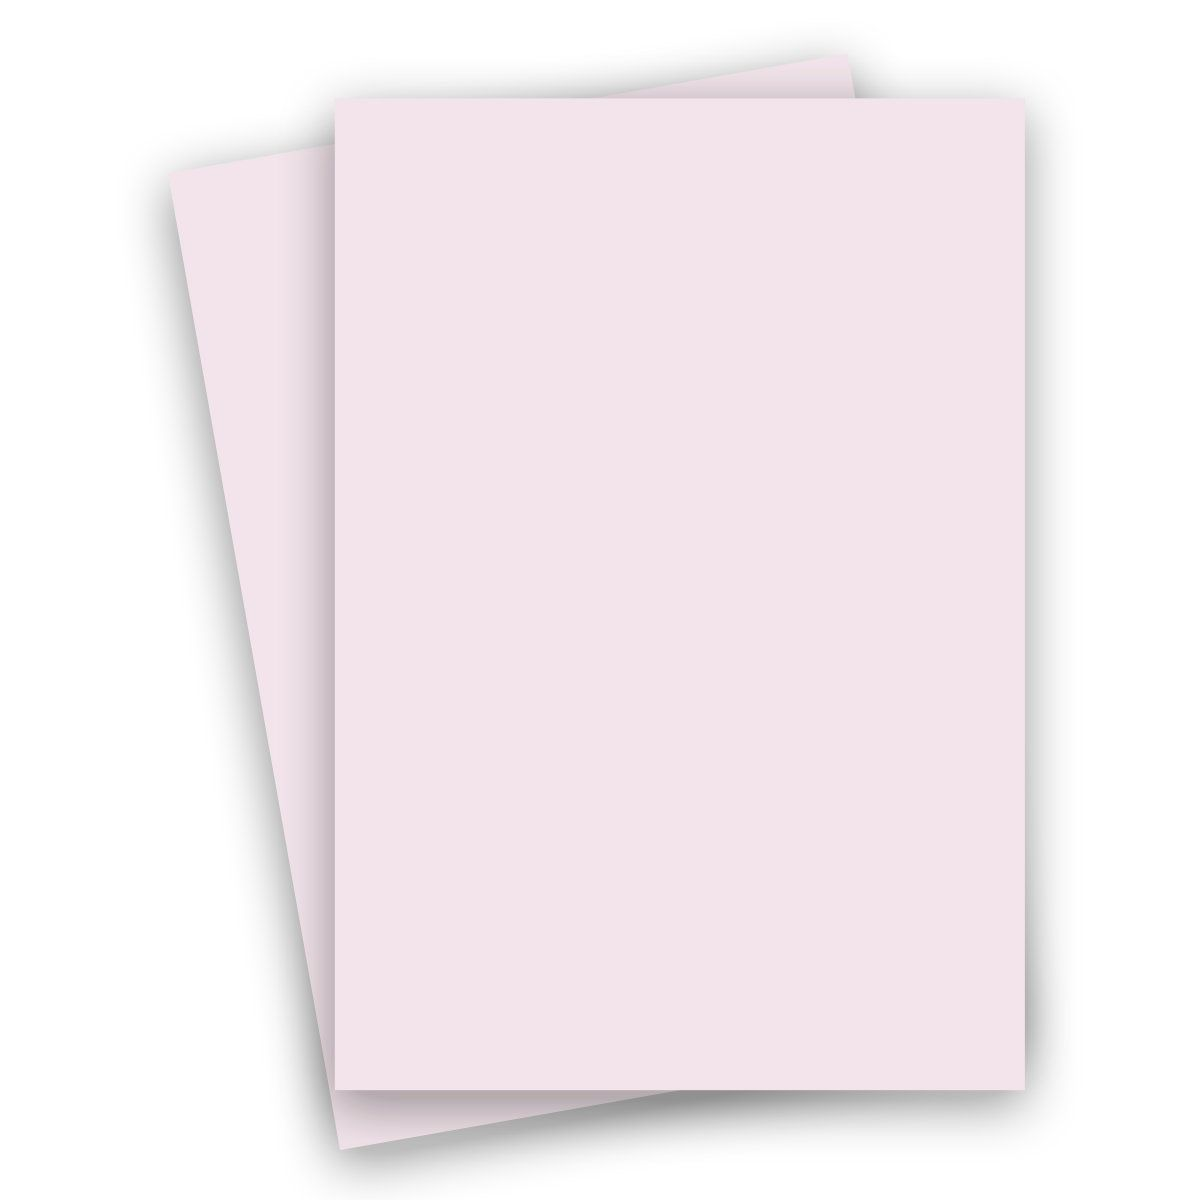 French Paper Poptone Pink Lemonade 8 5x14 65c 175gsm Lightweight Card Stock Paper 250 Pk In 2021 Soft Pink French Paper Pink Paper